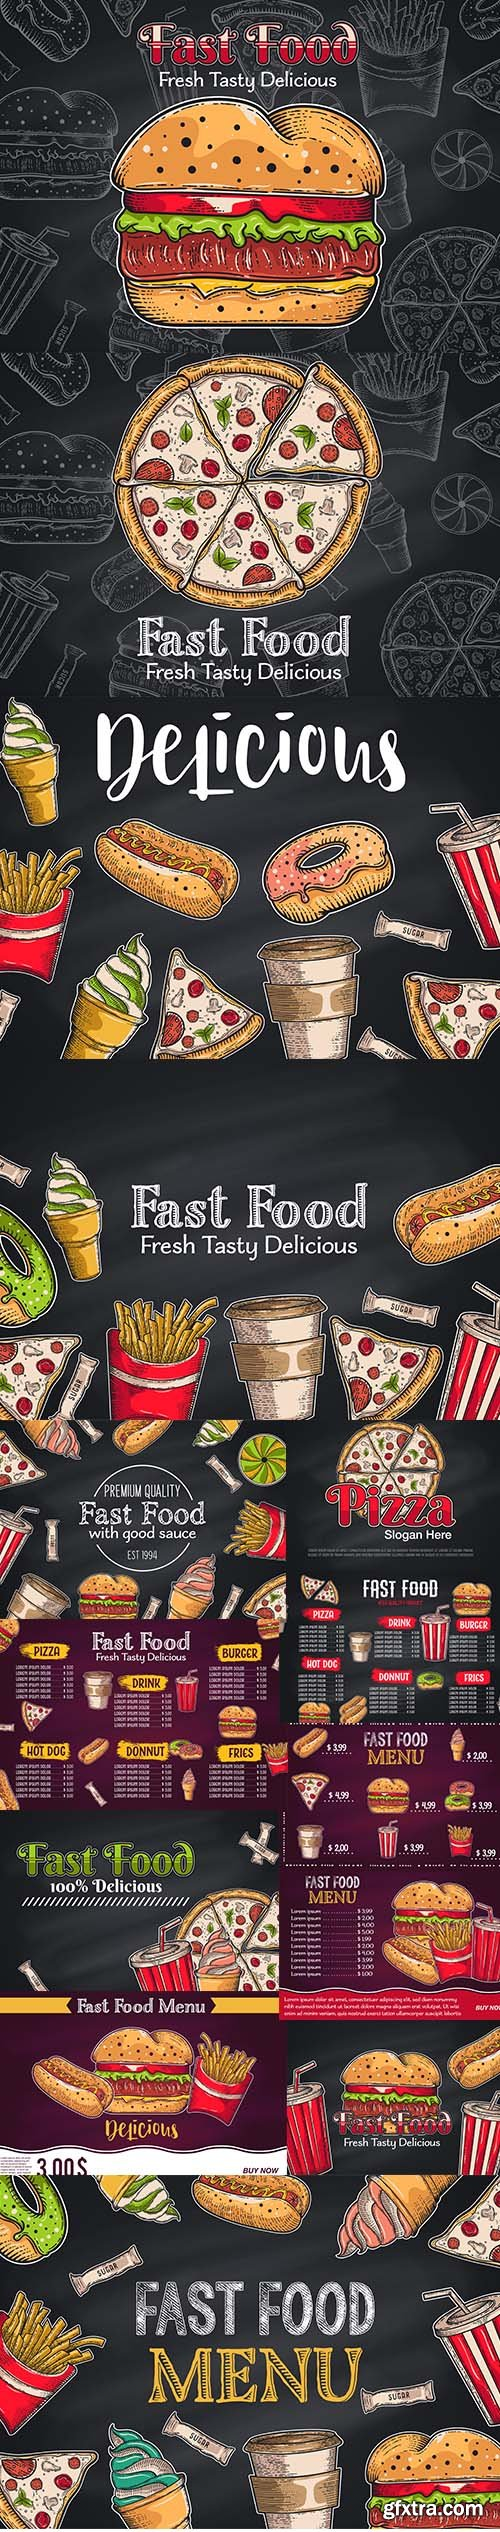 Vintage Fast Food Background Hand Drawn Illustrations